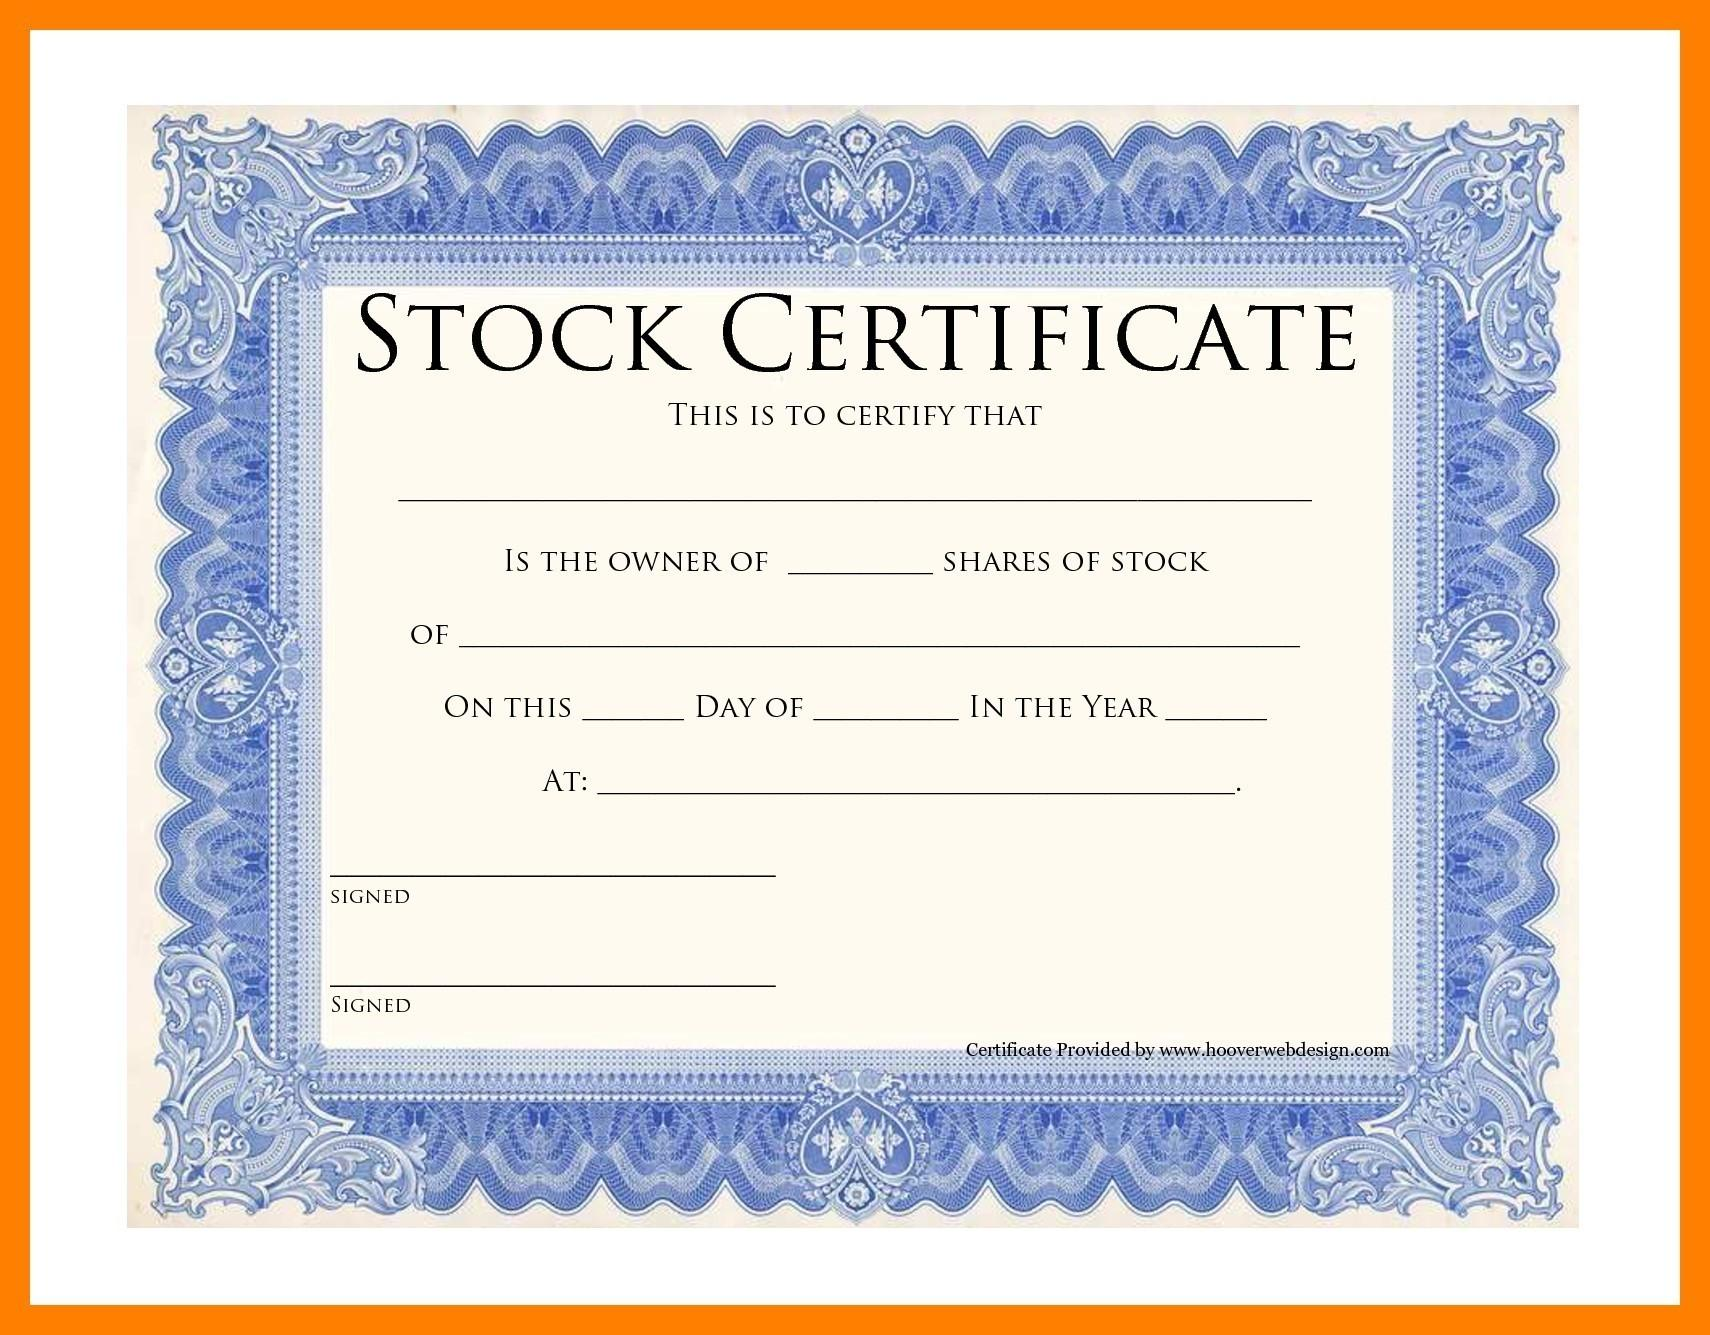 Corporate Stock Certificate Forms